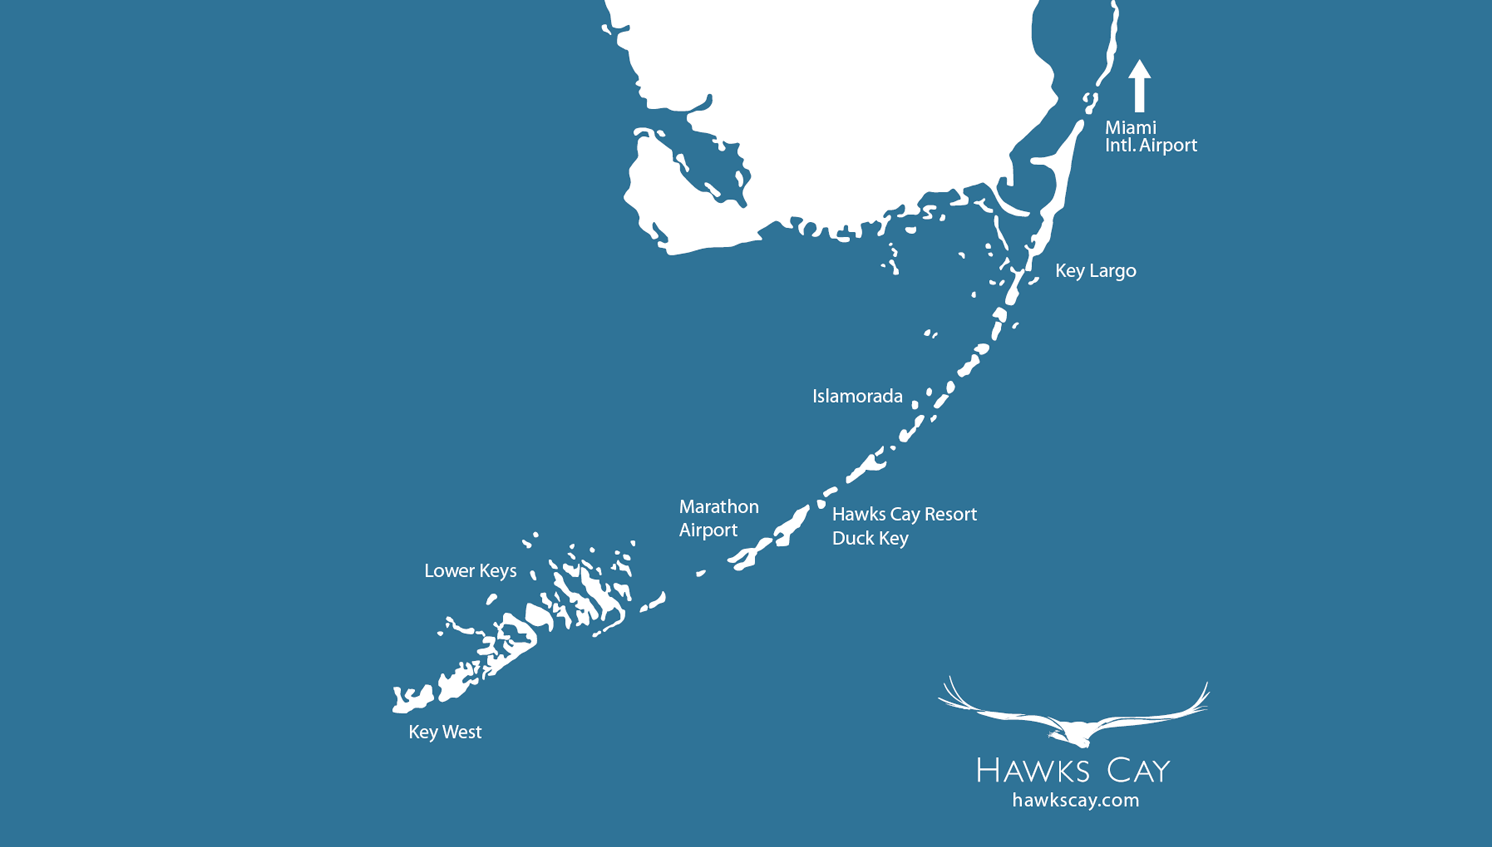 map of Hawks Cay location in Florida Keys